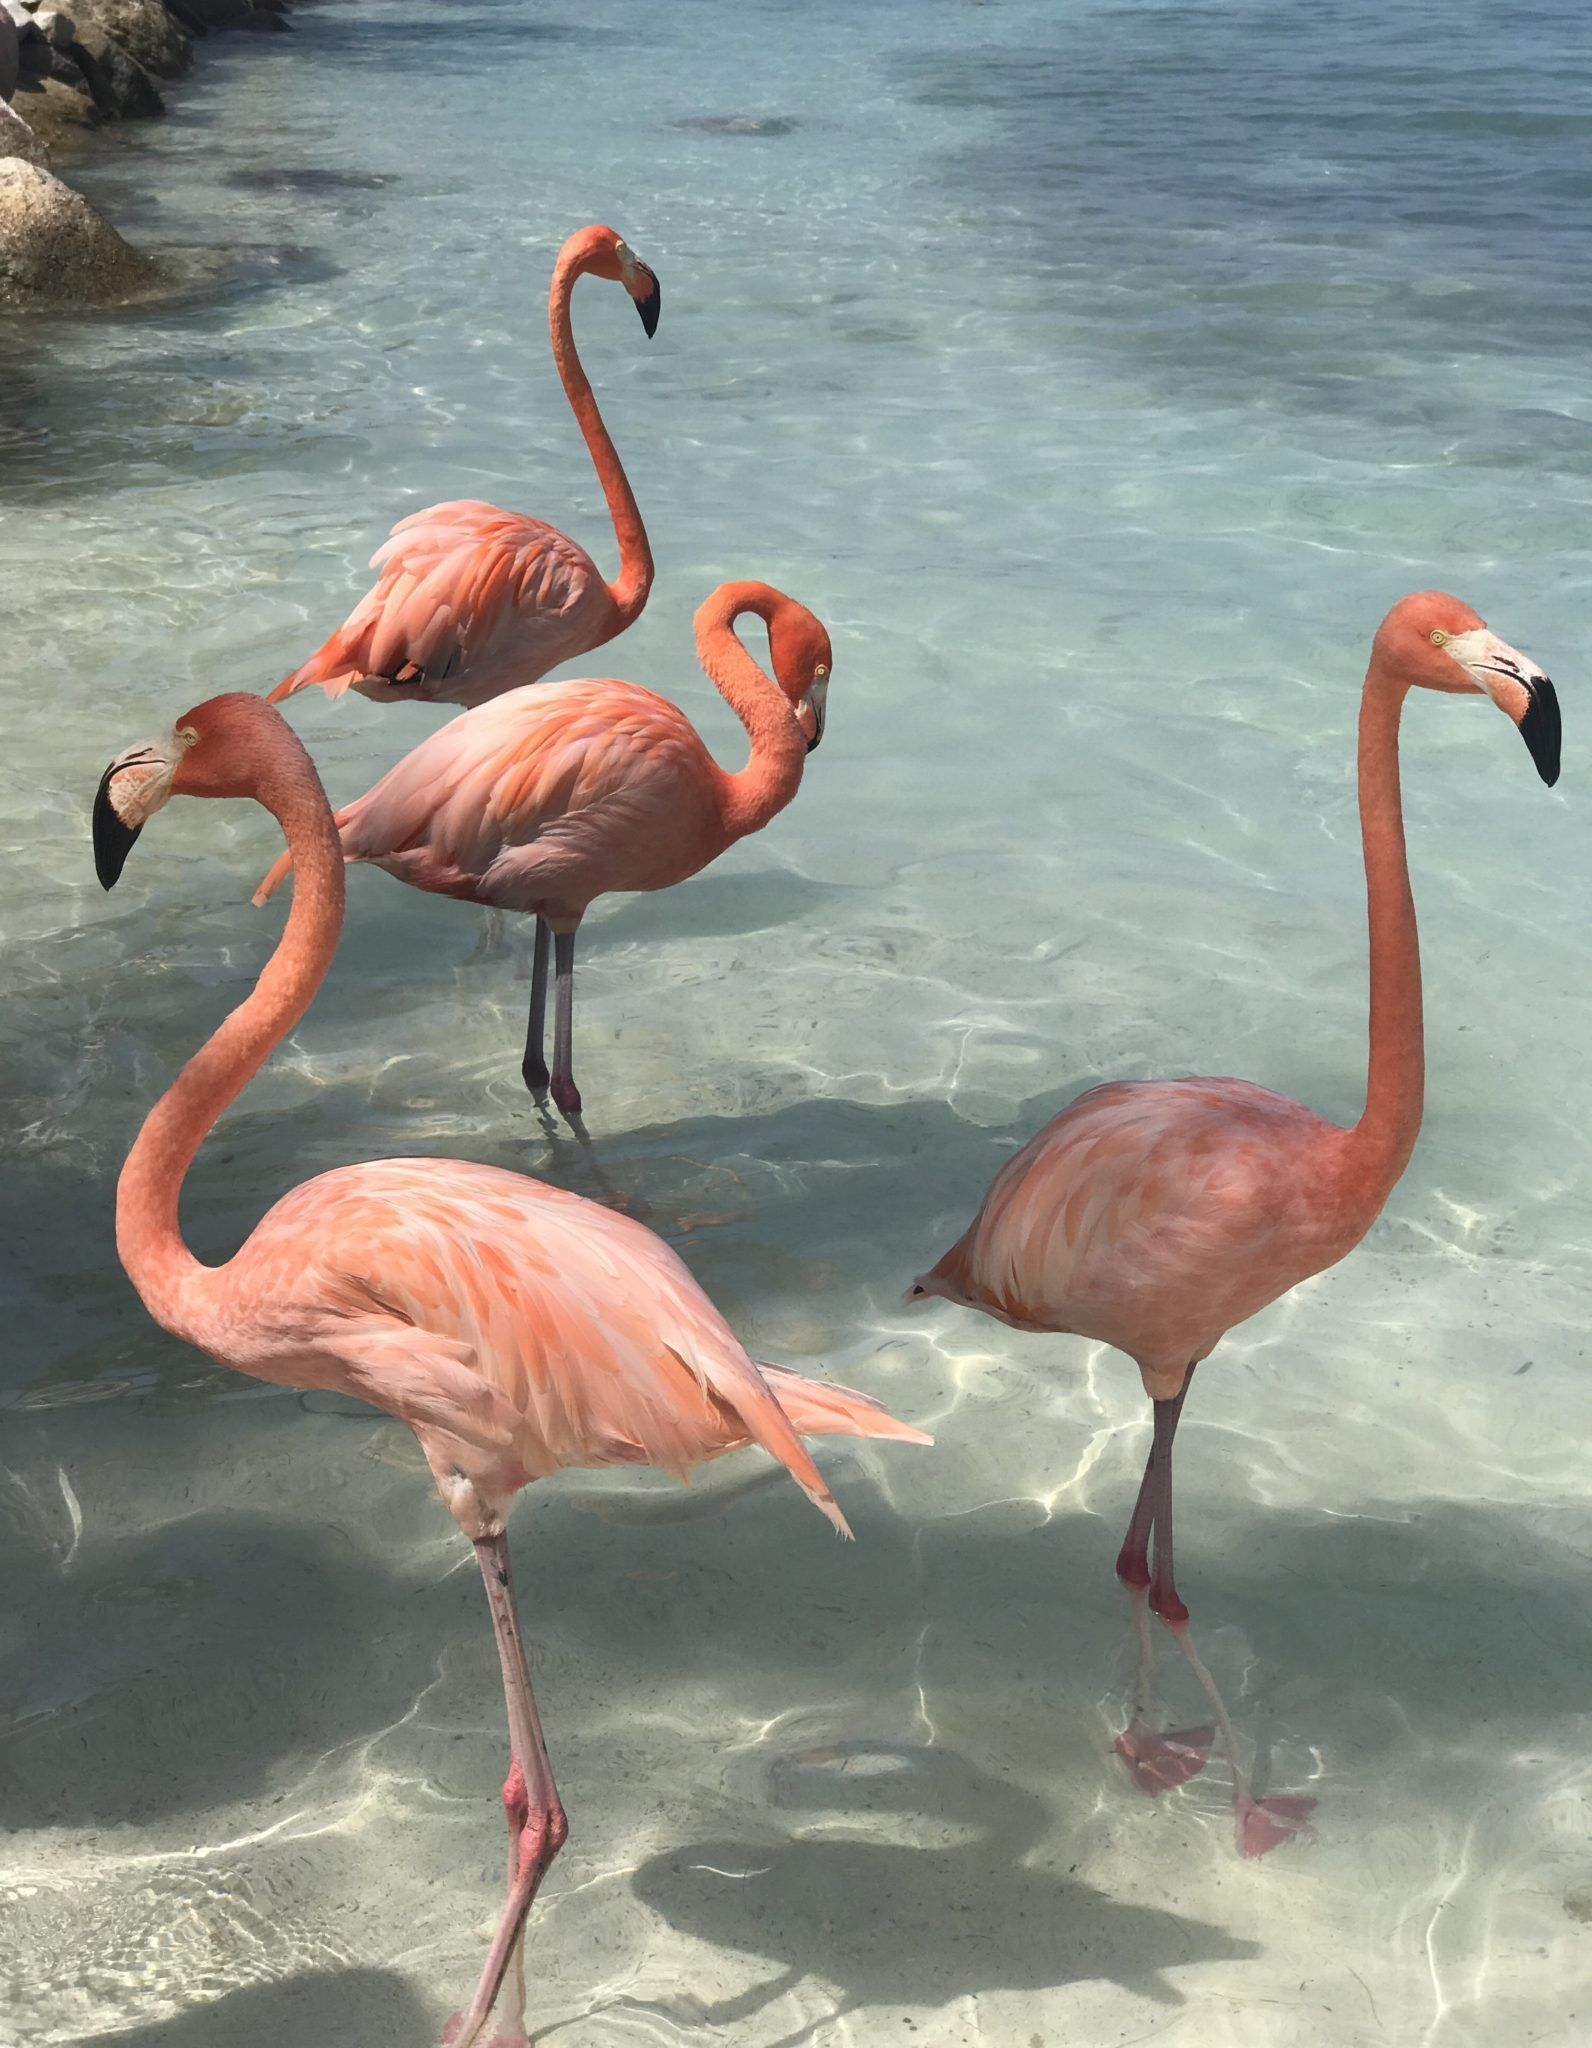 How To Visit Flamingo Beach Beaches And Oceans Pinterest